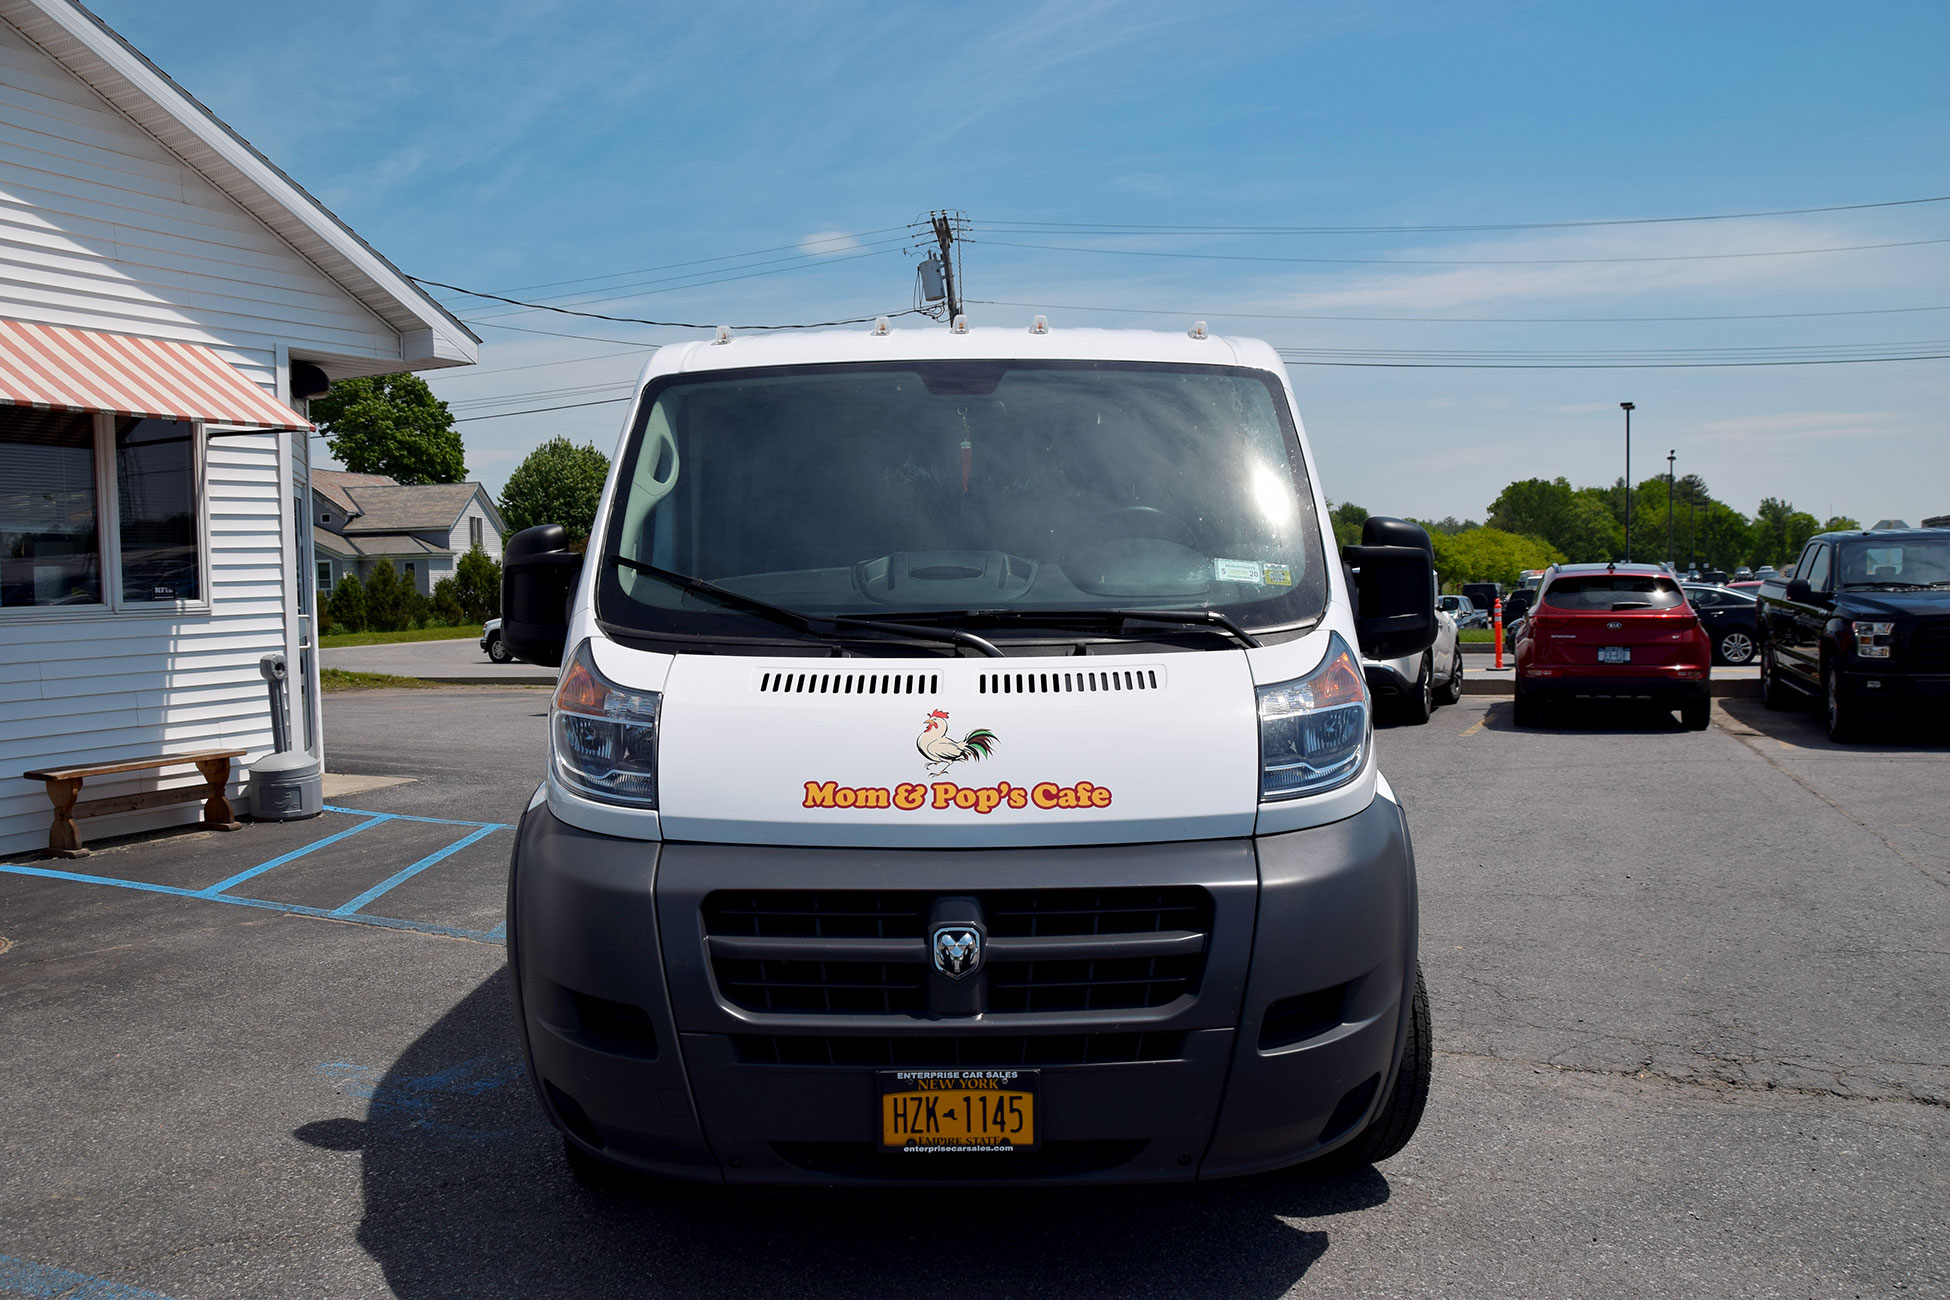 Photo of front of Mom and Pop's Cafe catering van with graphics designed and applied by SillyCar Design.